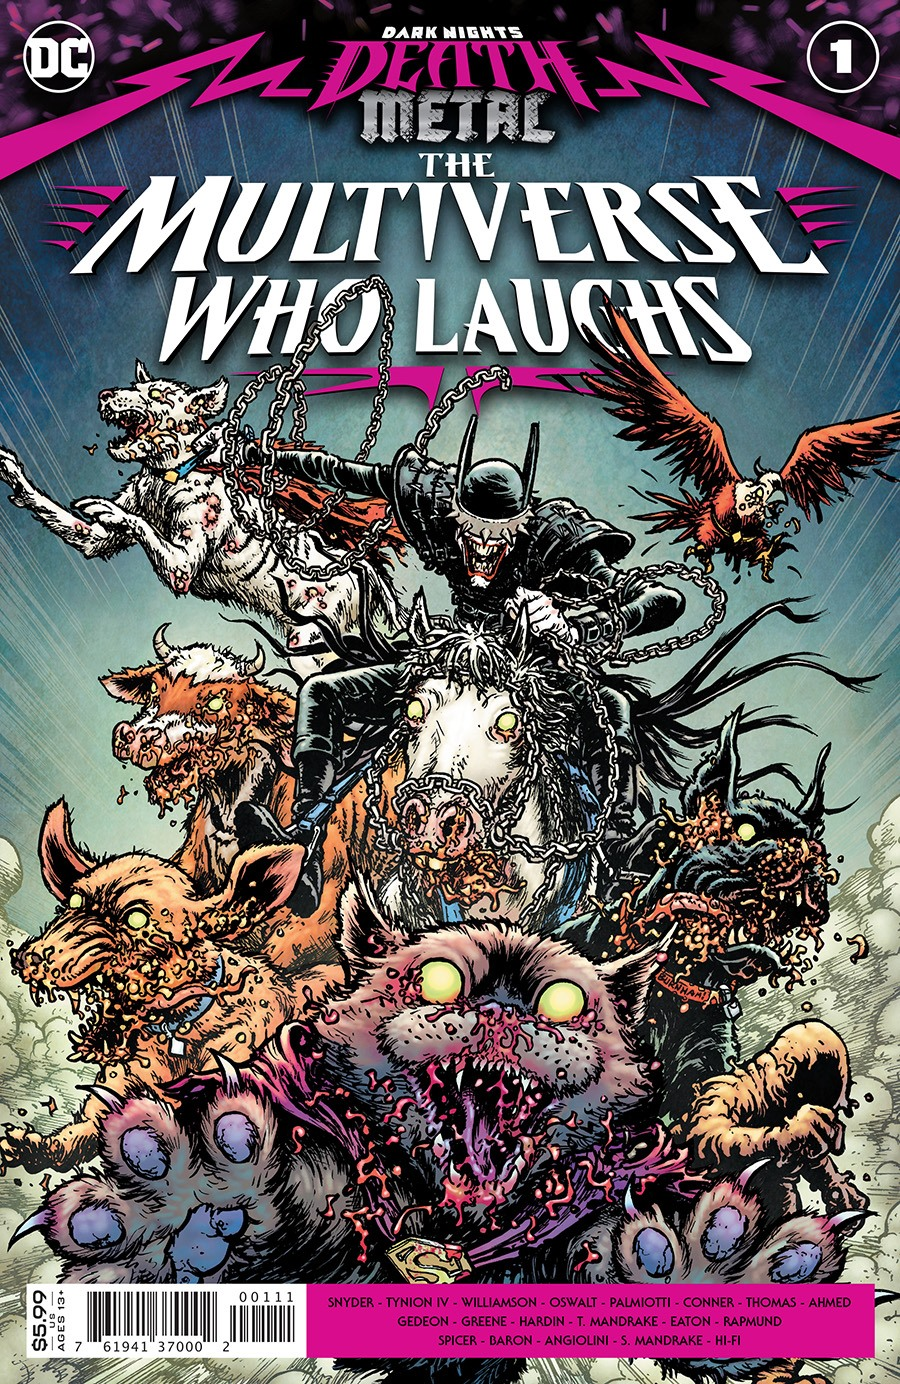 DARK NIGHTS DEATH METAL: THE MULTIVERSE WHO LAUGHS #1 (ONE-SHOT)